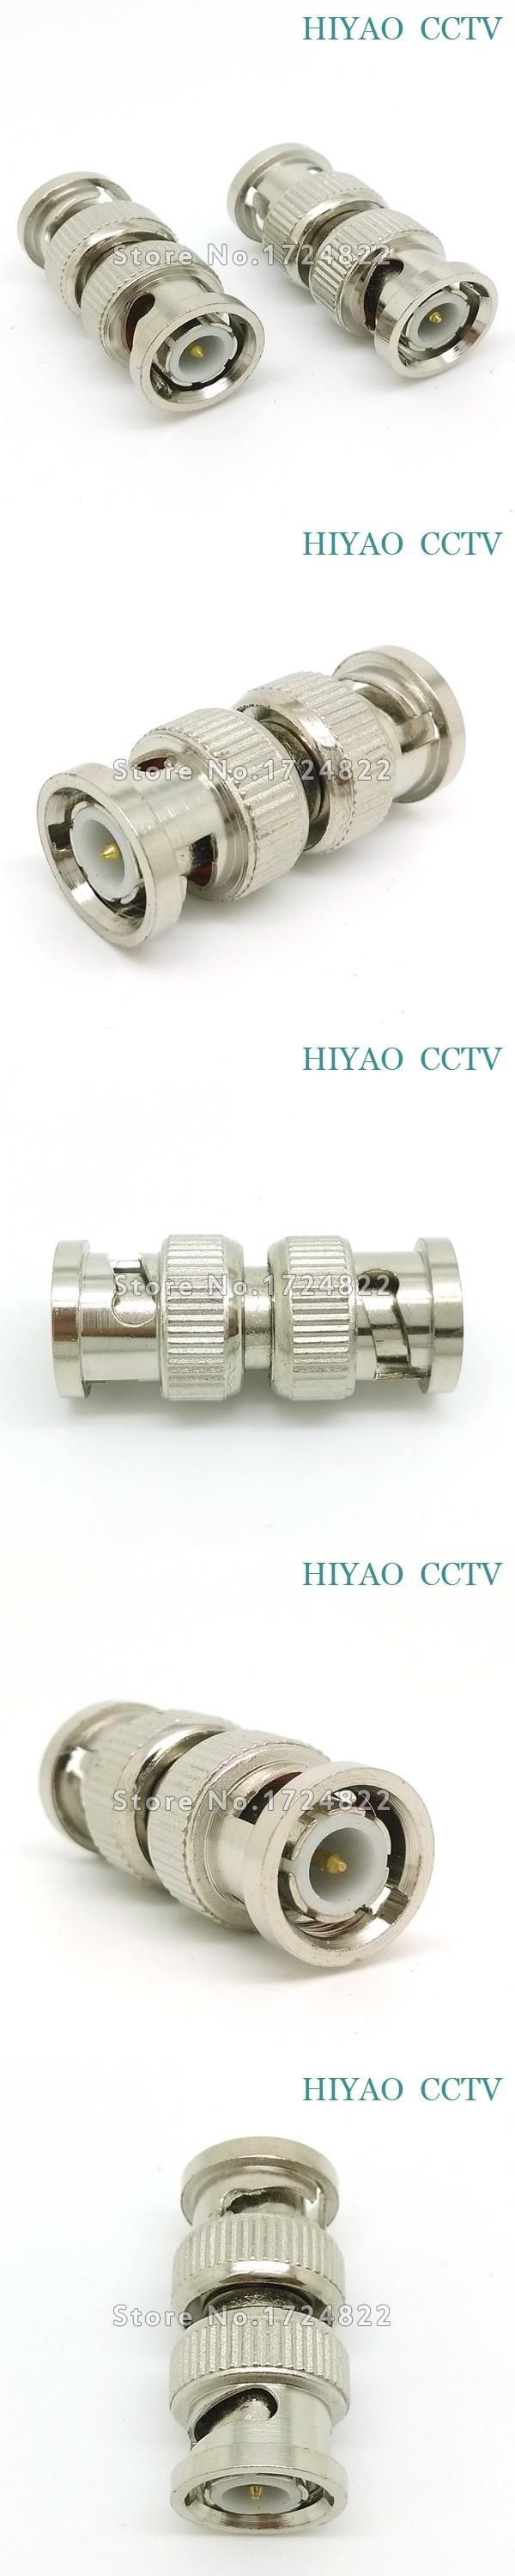 10pcs Splitter Plug Adapter BNC Connector male to BNC male Coupler for CCTV RG59 cable Security System & Video Camera